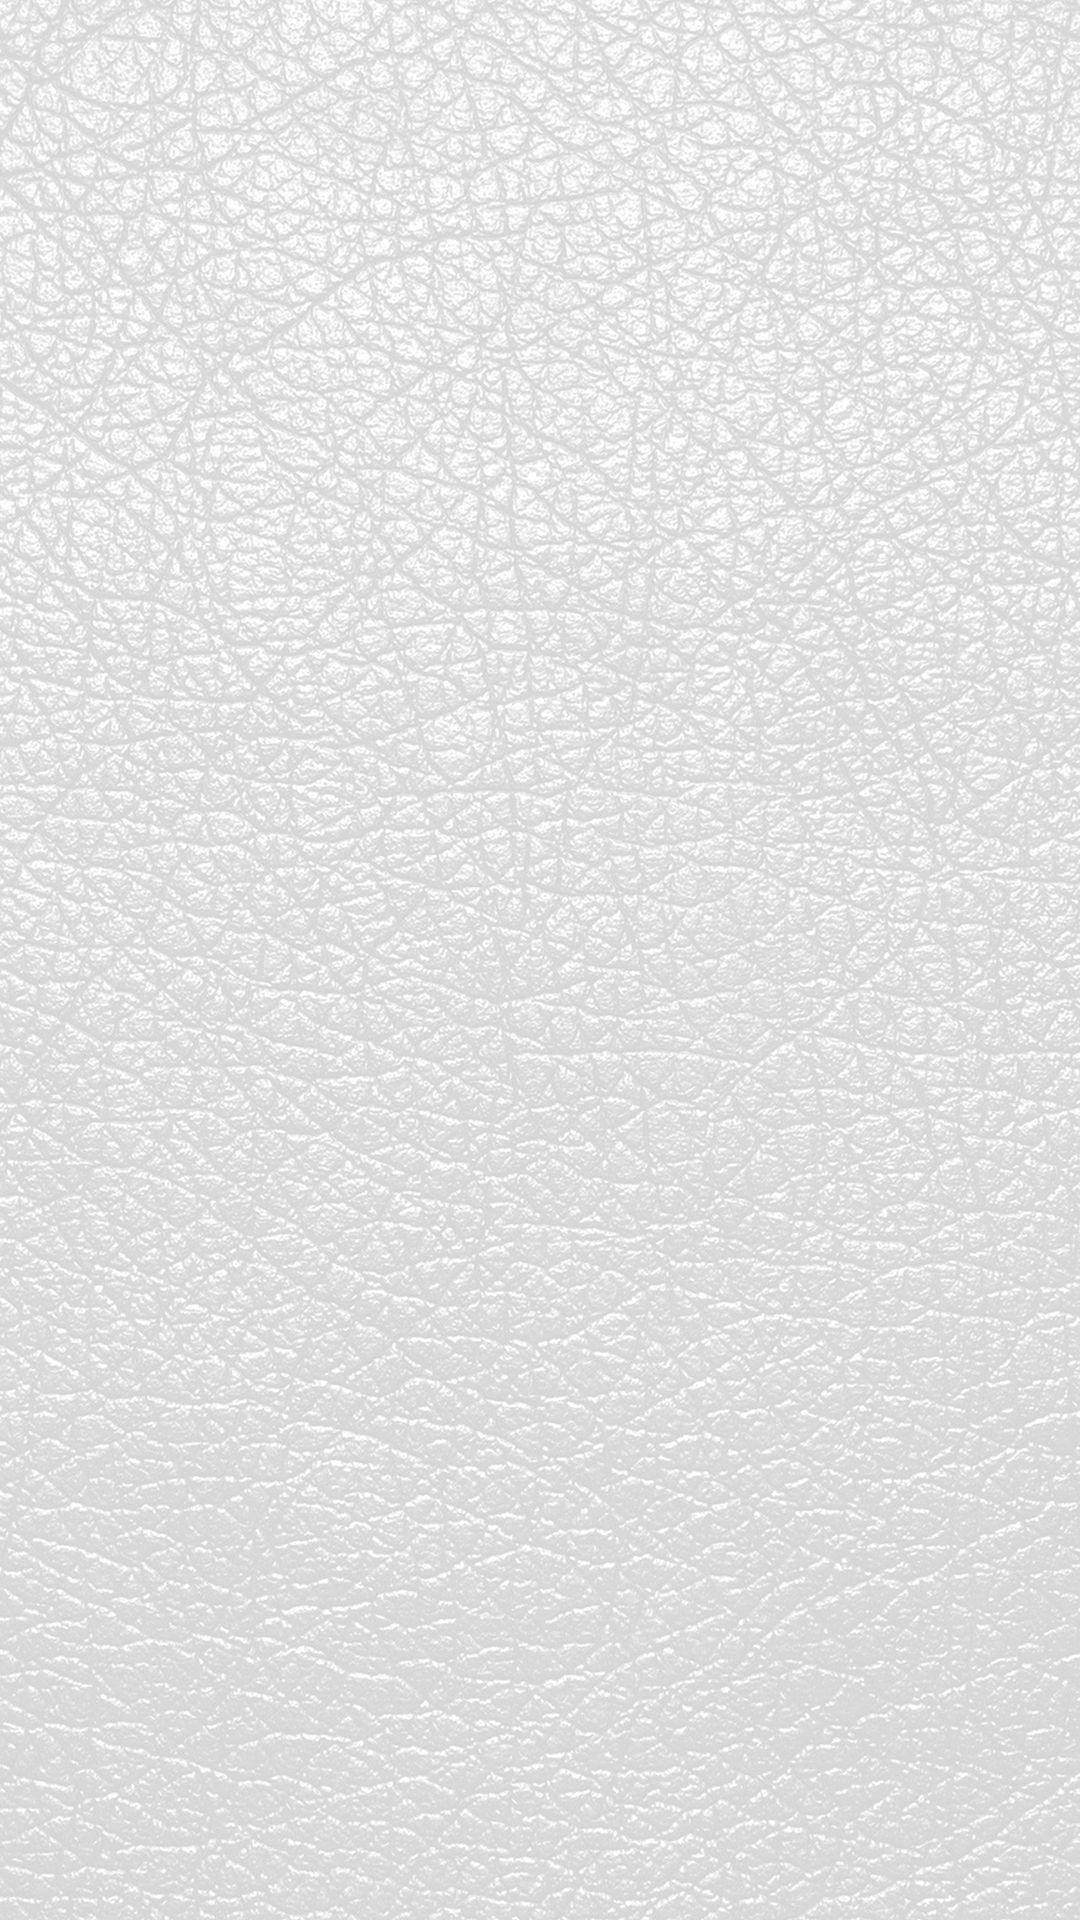 White Wallpaper Texture 45 Images